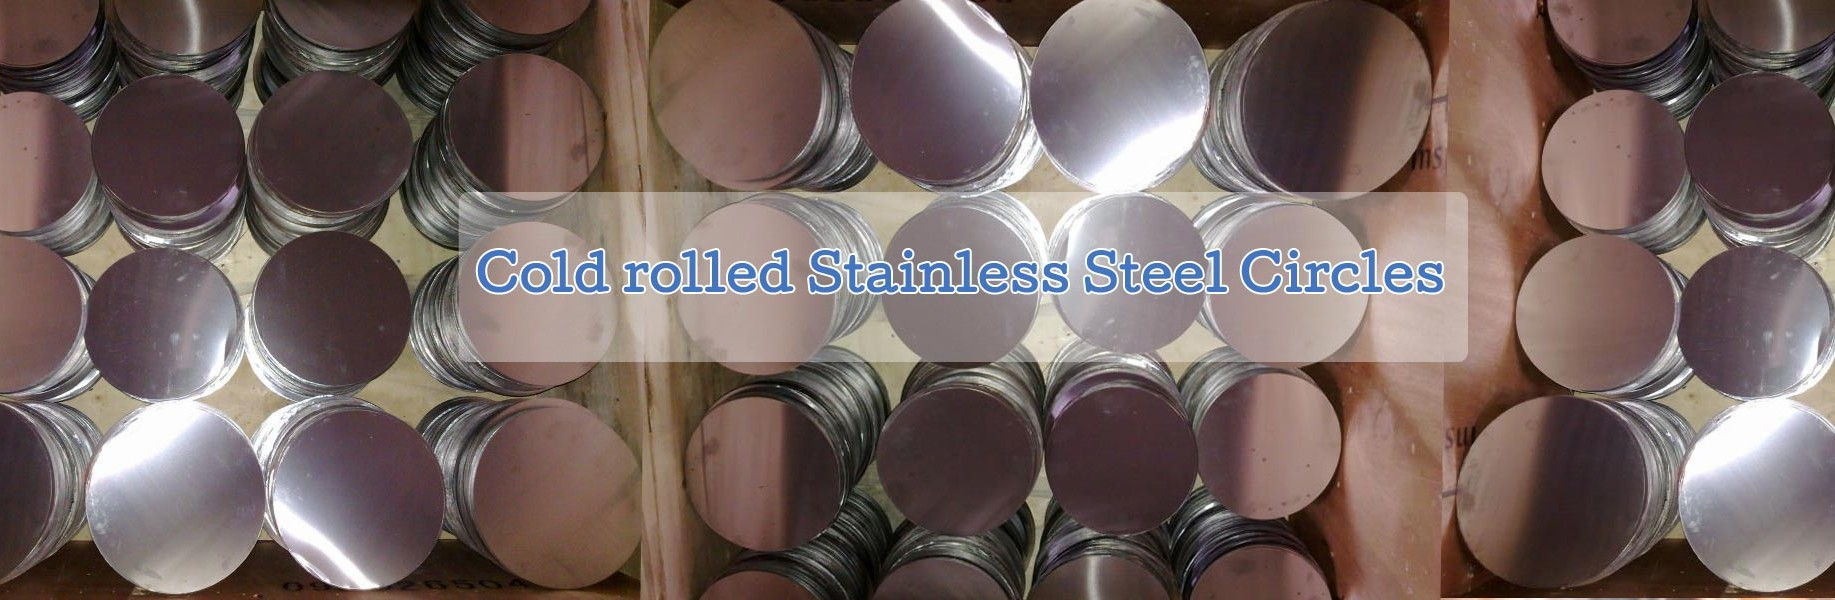 COLD ROLLED STAINLESS STEEL CIRCLES